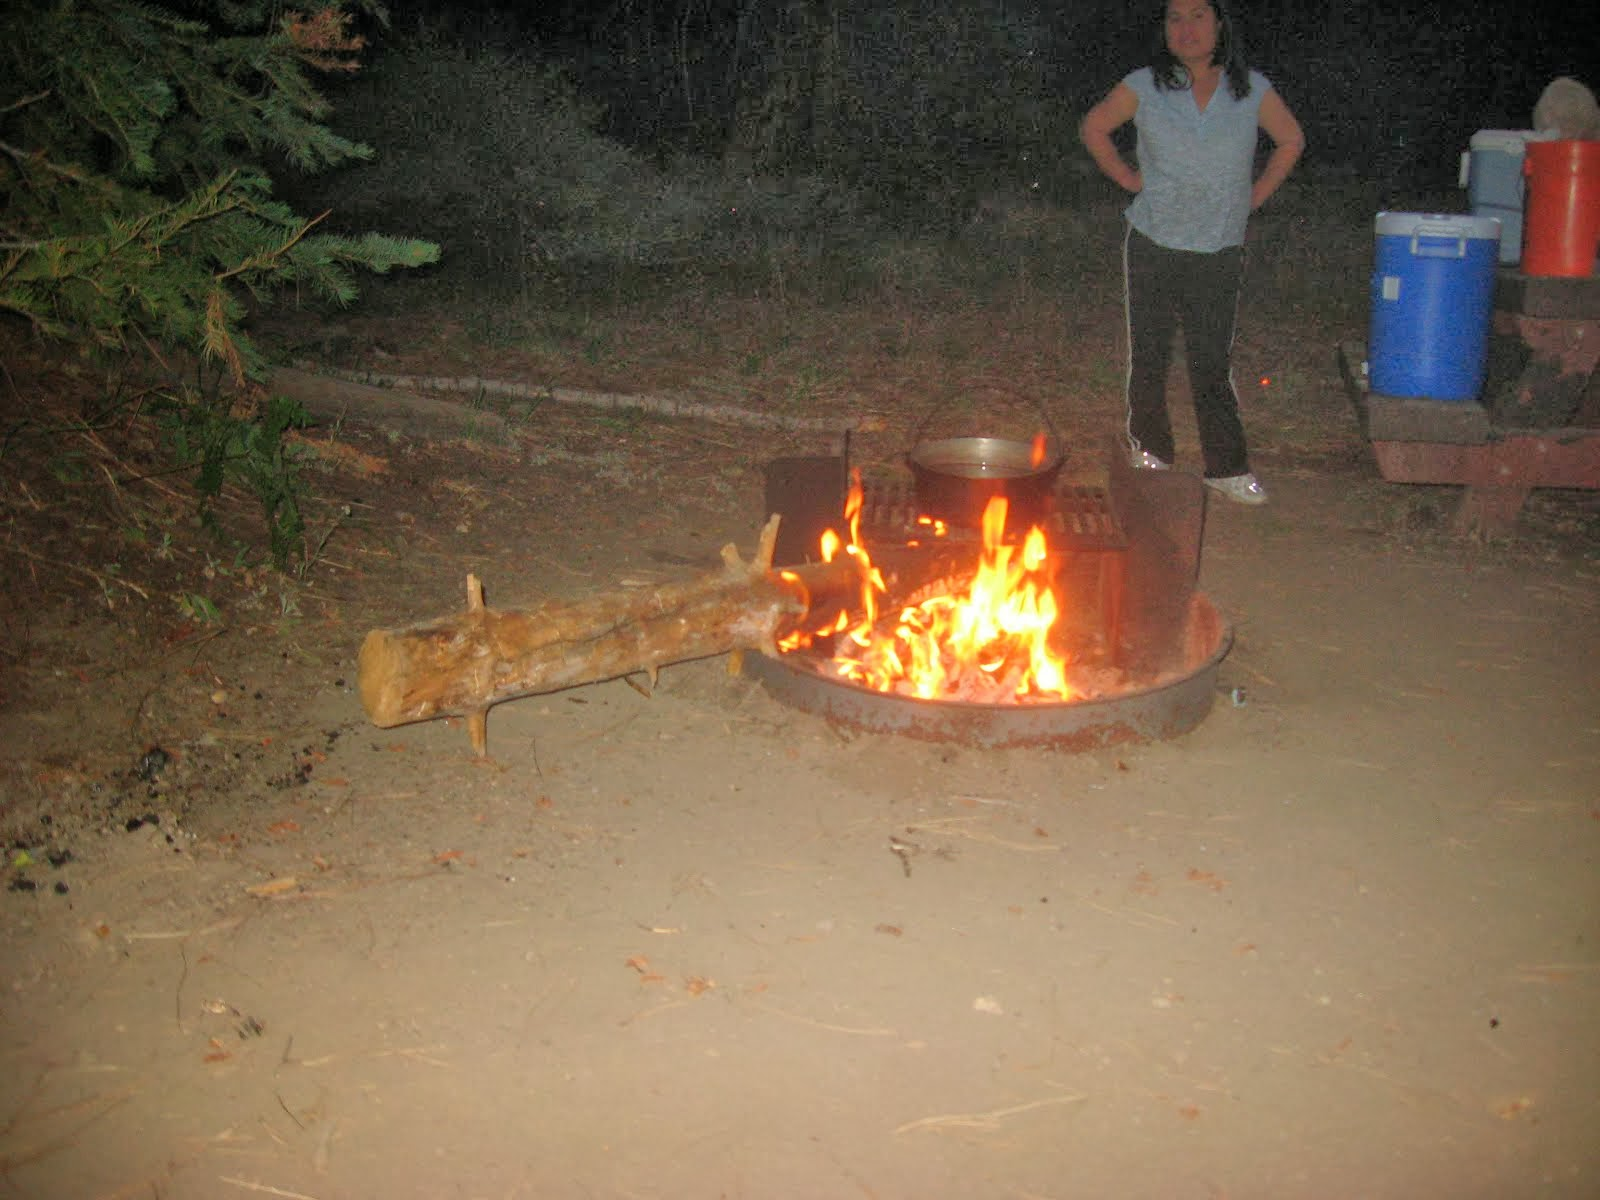 I made a fire@campsite:)